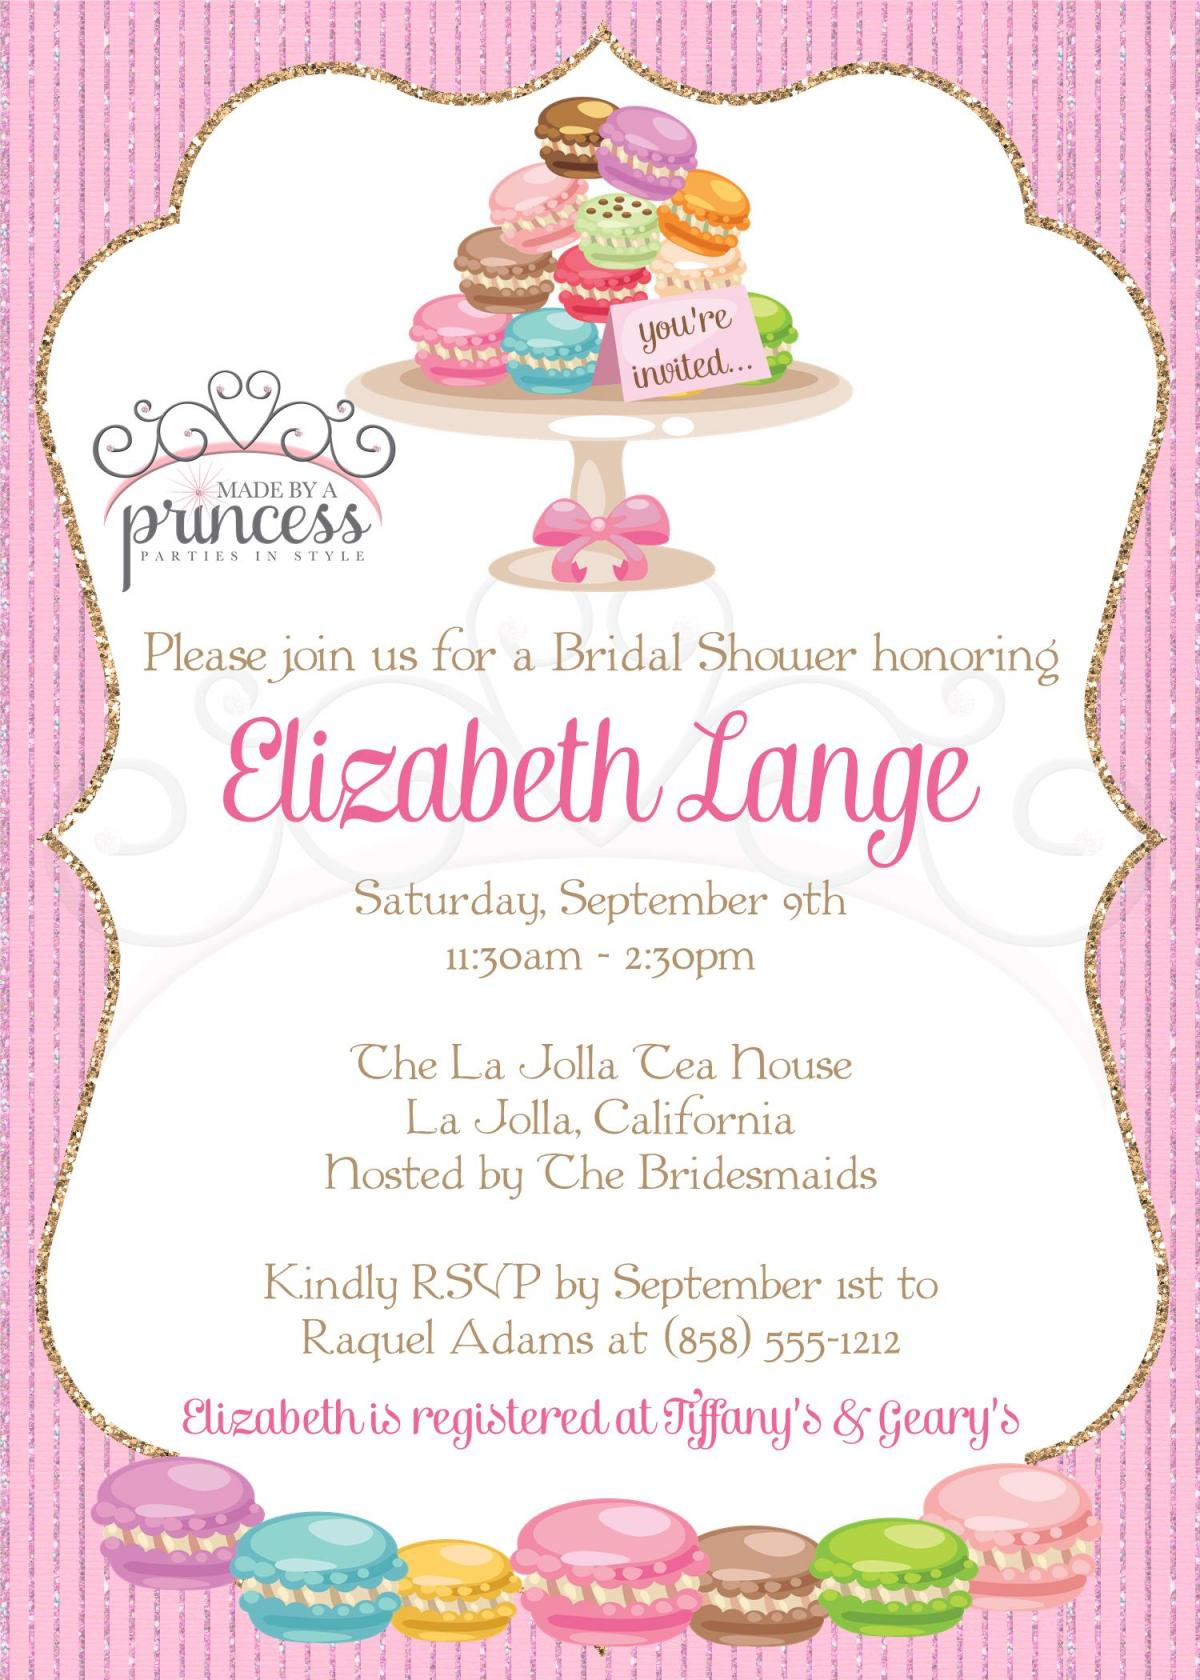 Bridal Shower Invitation - Macarons Macaroons - Printable DIY - Baby Shower Invitation